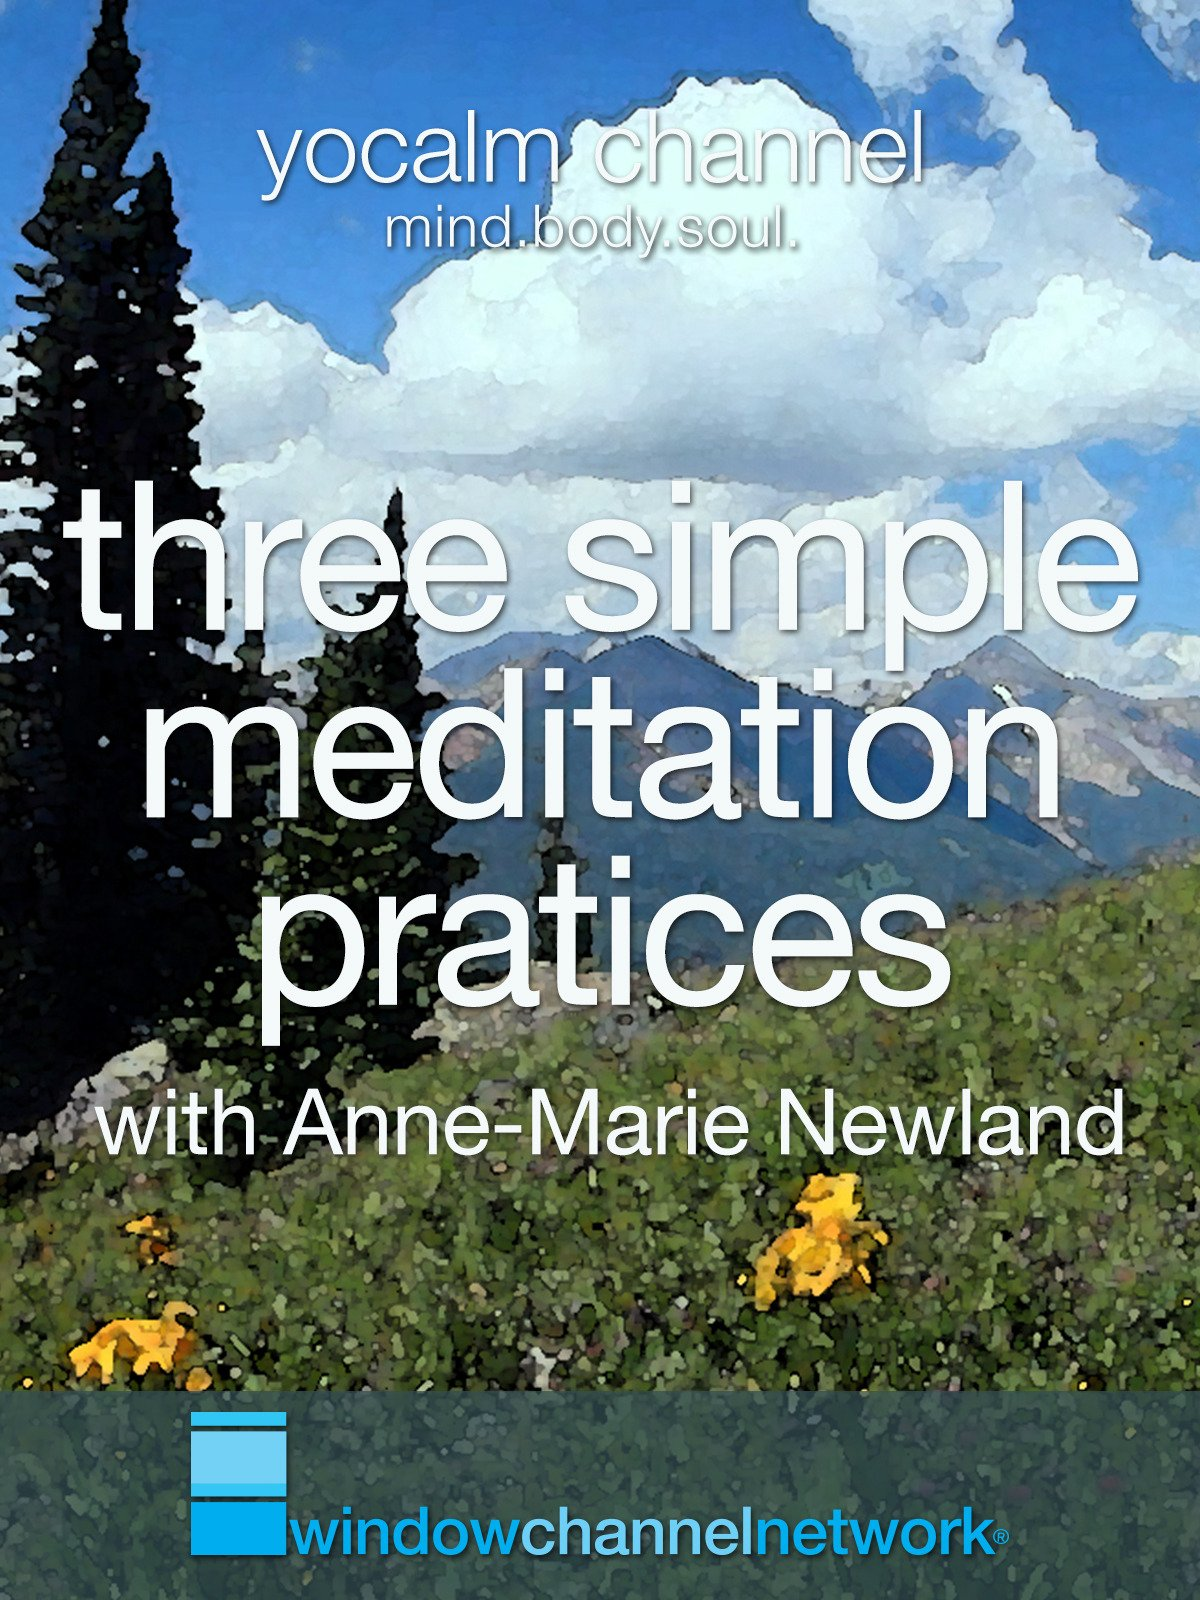 Three Simple Meditation Practices with Anne-Marie Newland